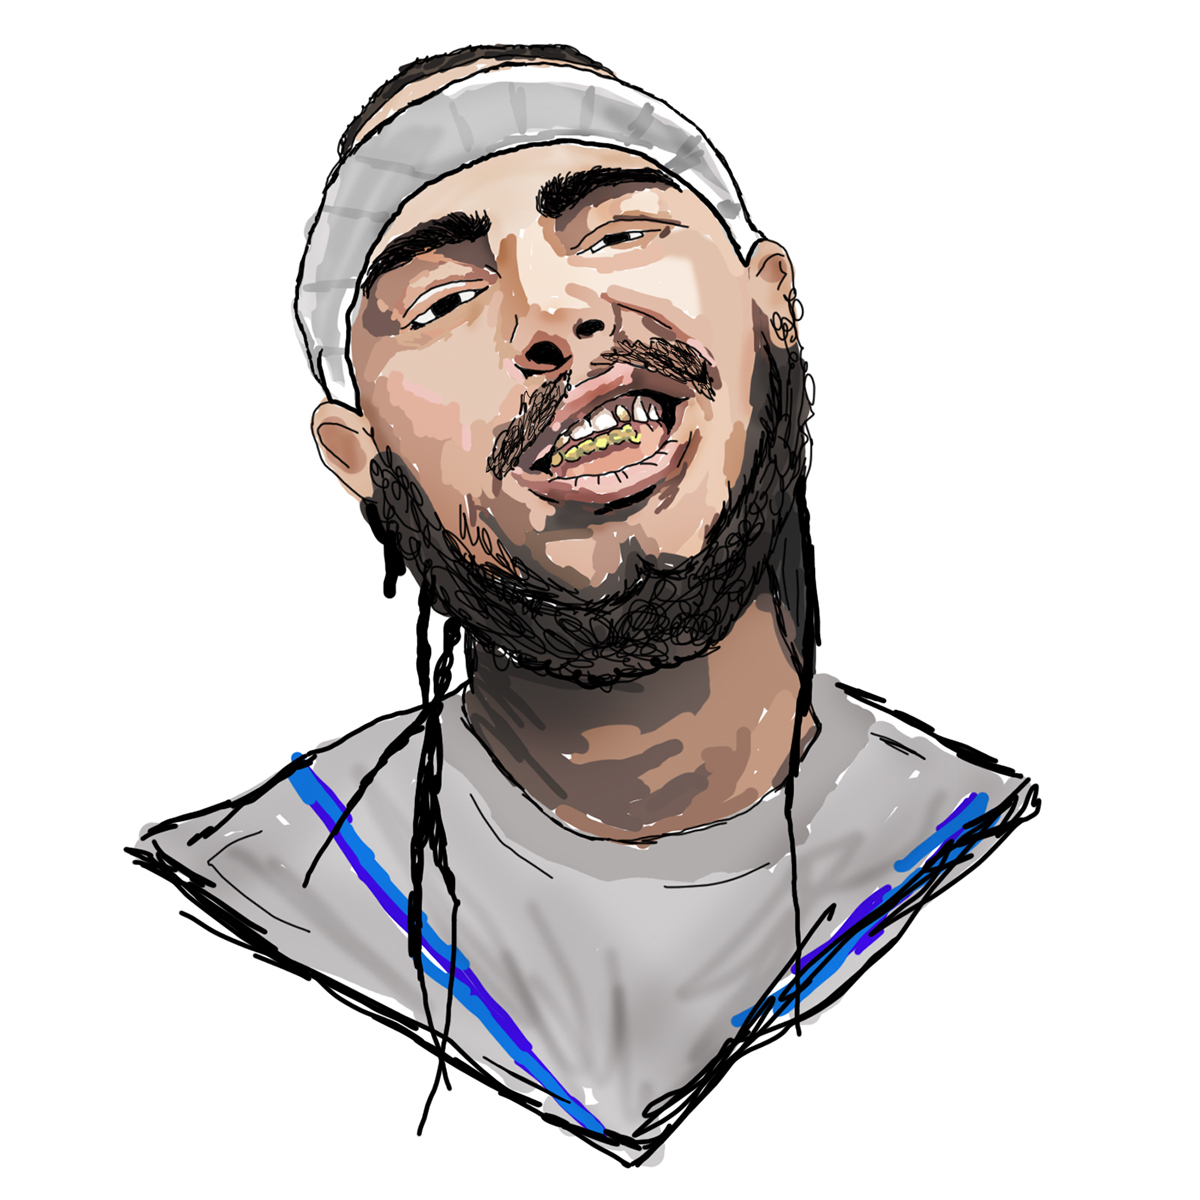 Post Malone Drawing: Portrait Illustrations On Behance